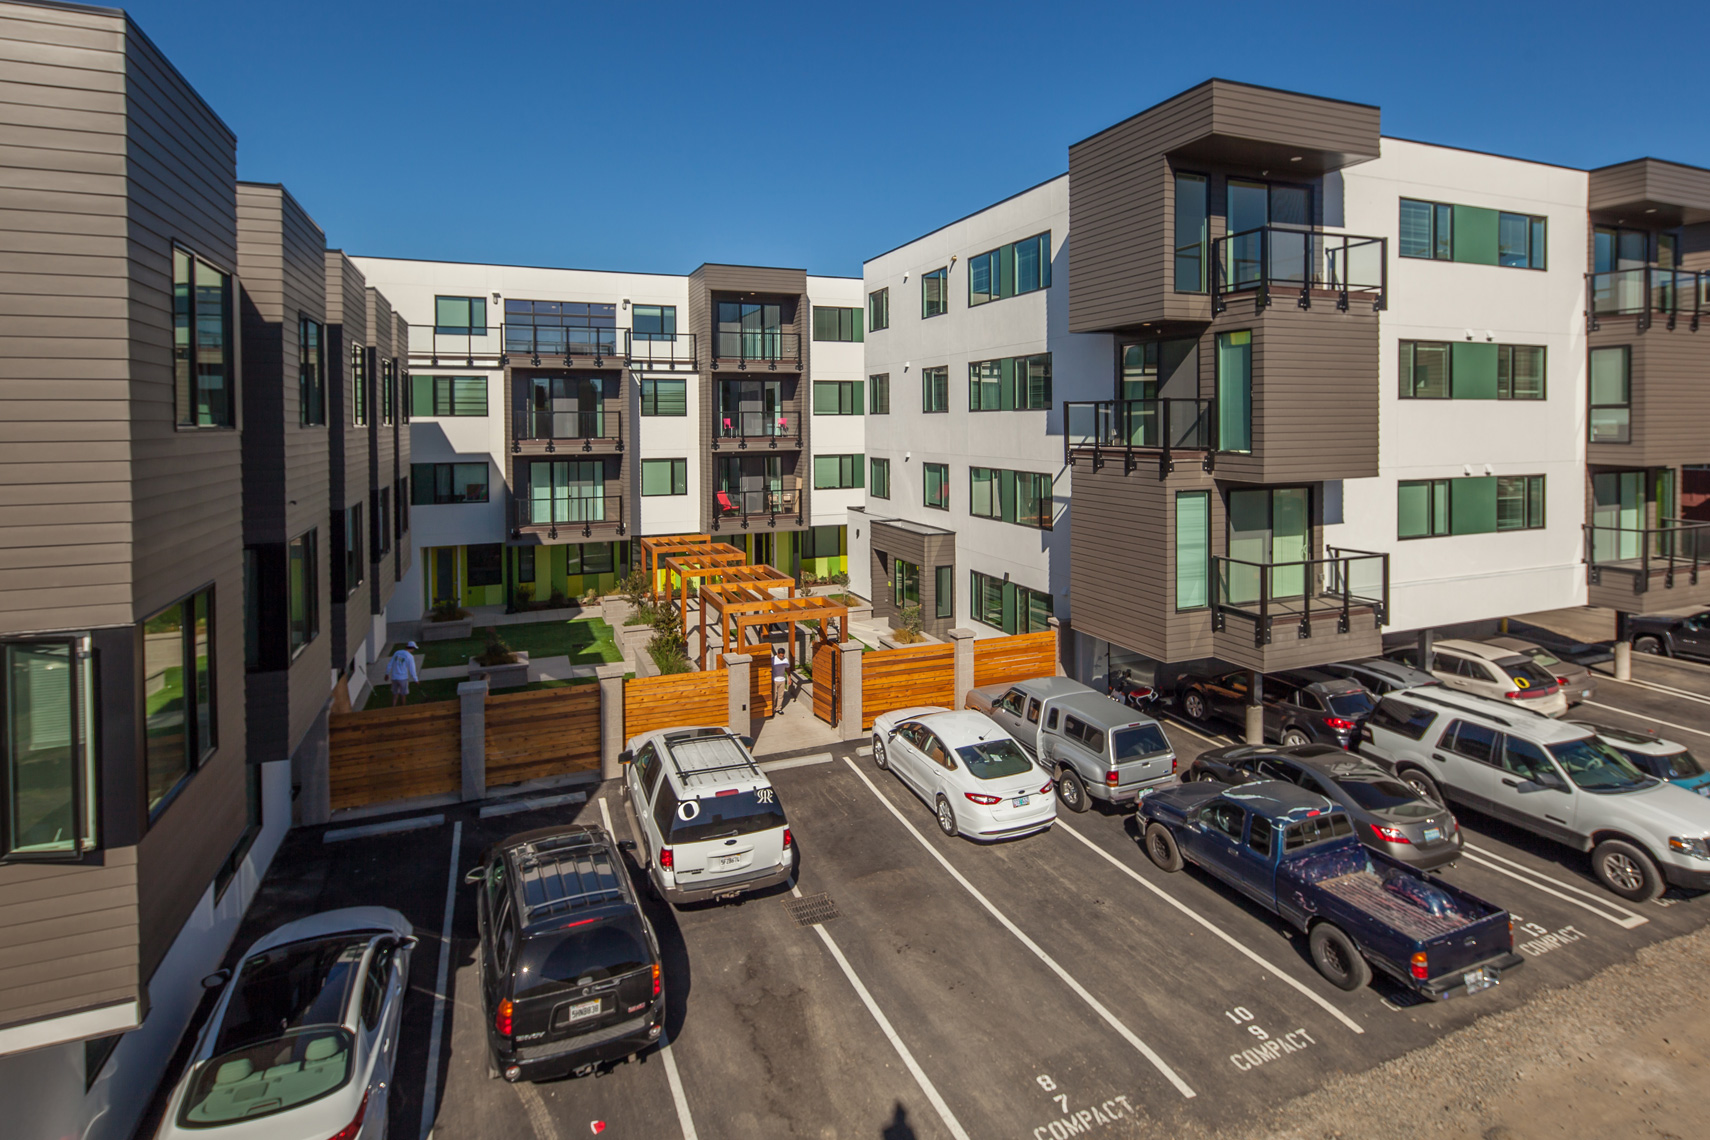 THEANDY_MULTIFAMILY_COURTYARDABOVE_SMALL